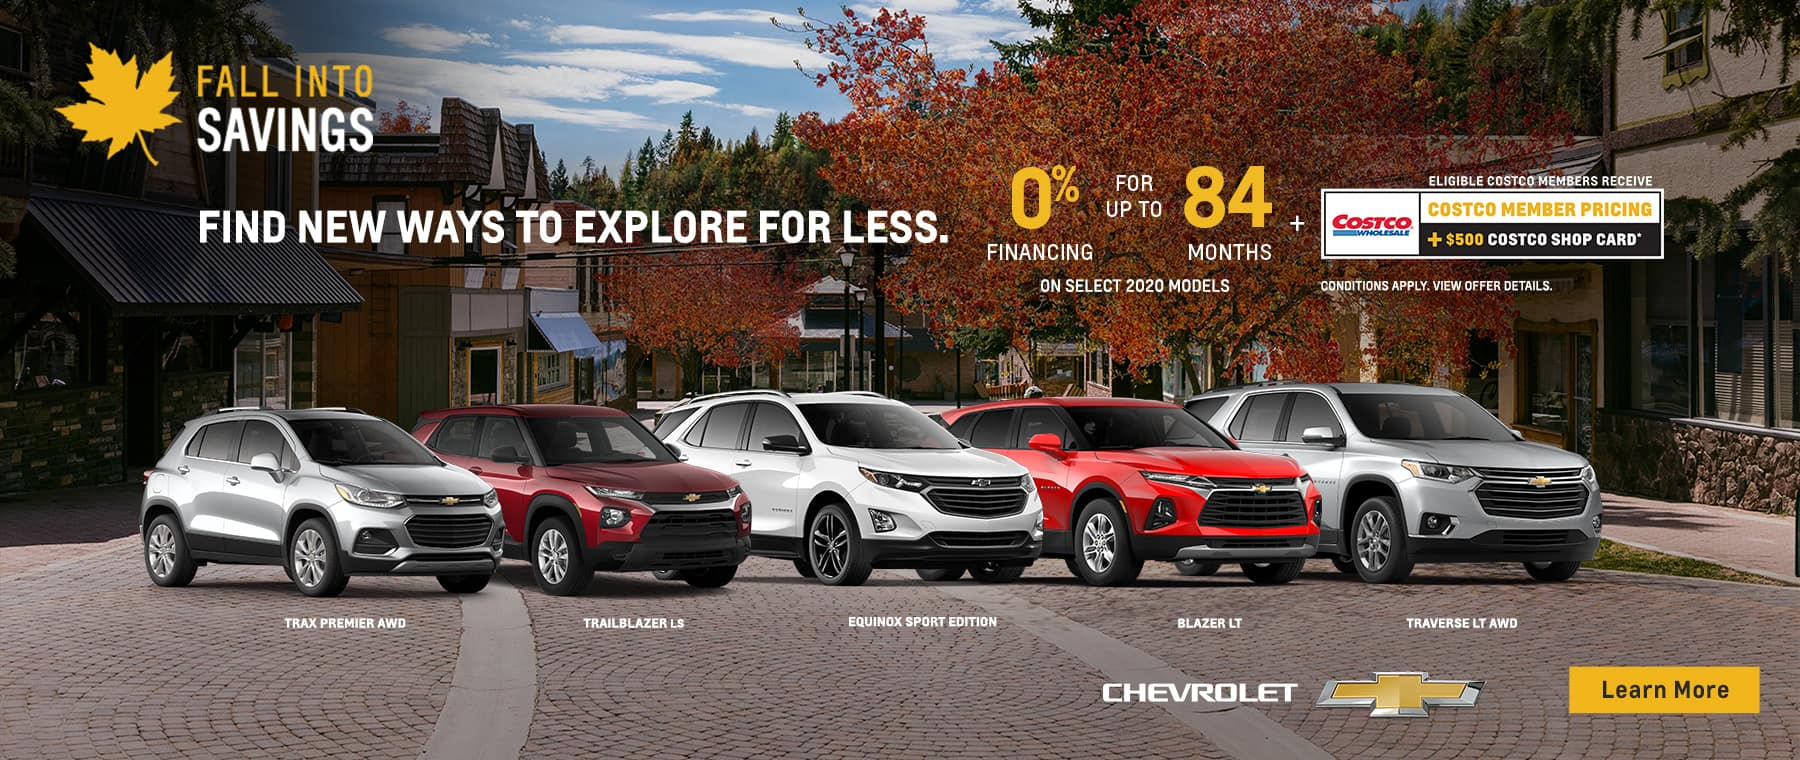 2020_OCT_WST_Chevy_T3_EN_1800X760_FAMILY_ABPR